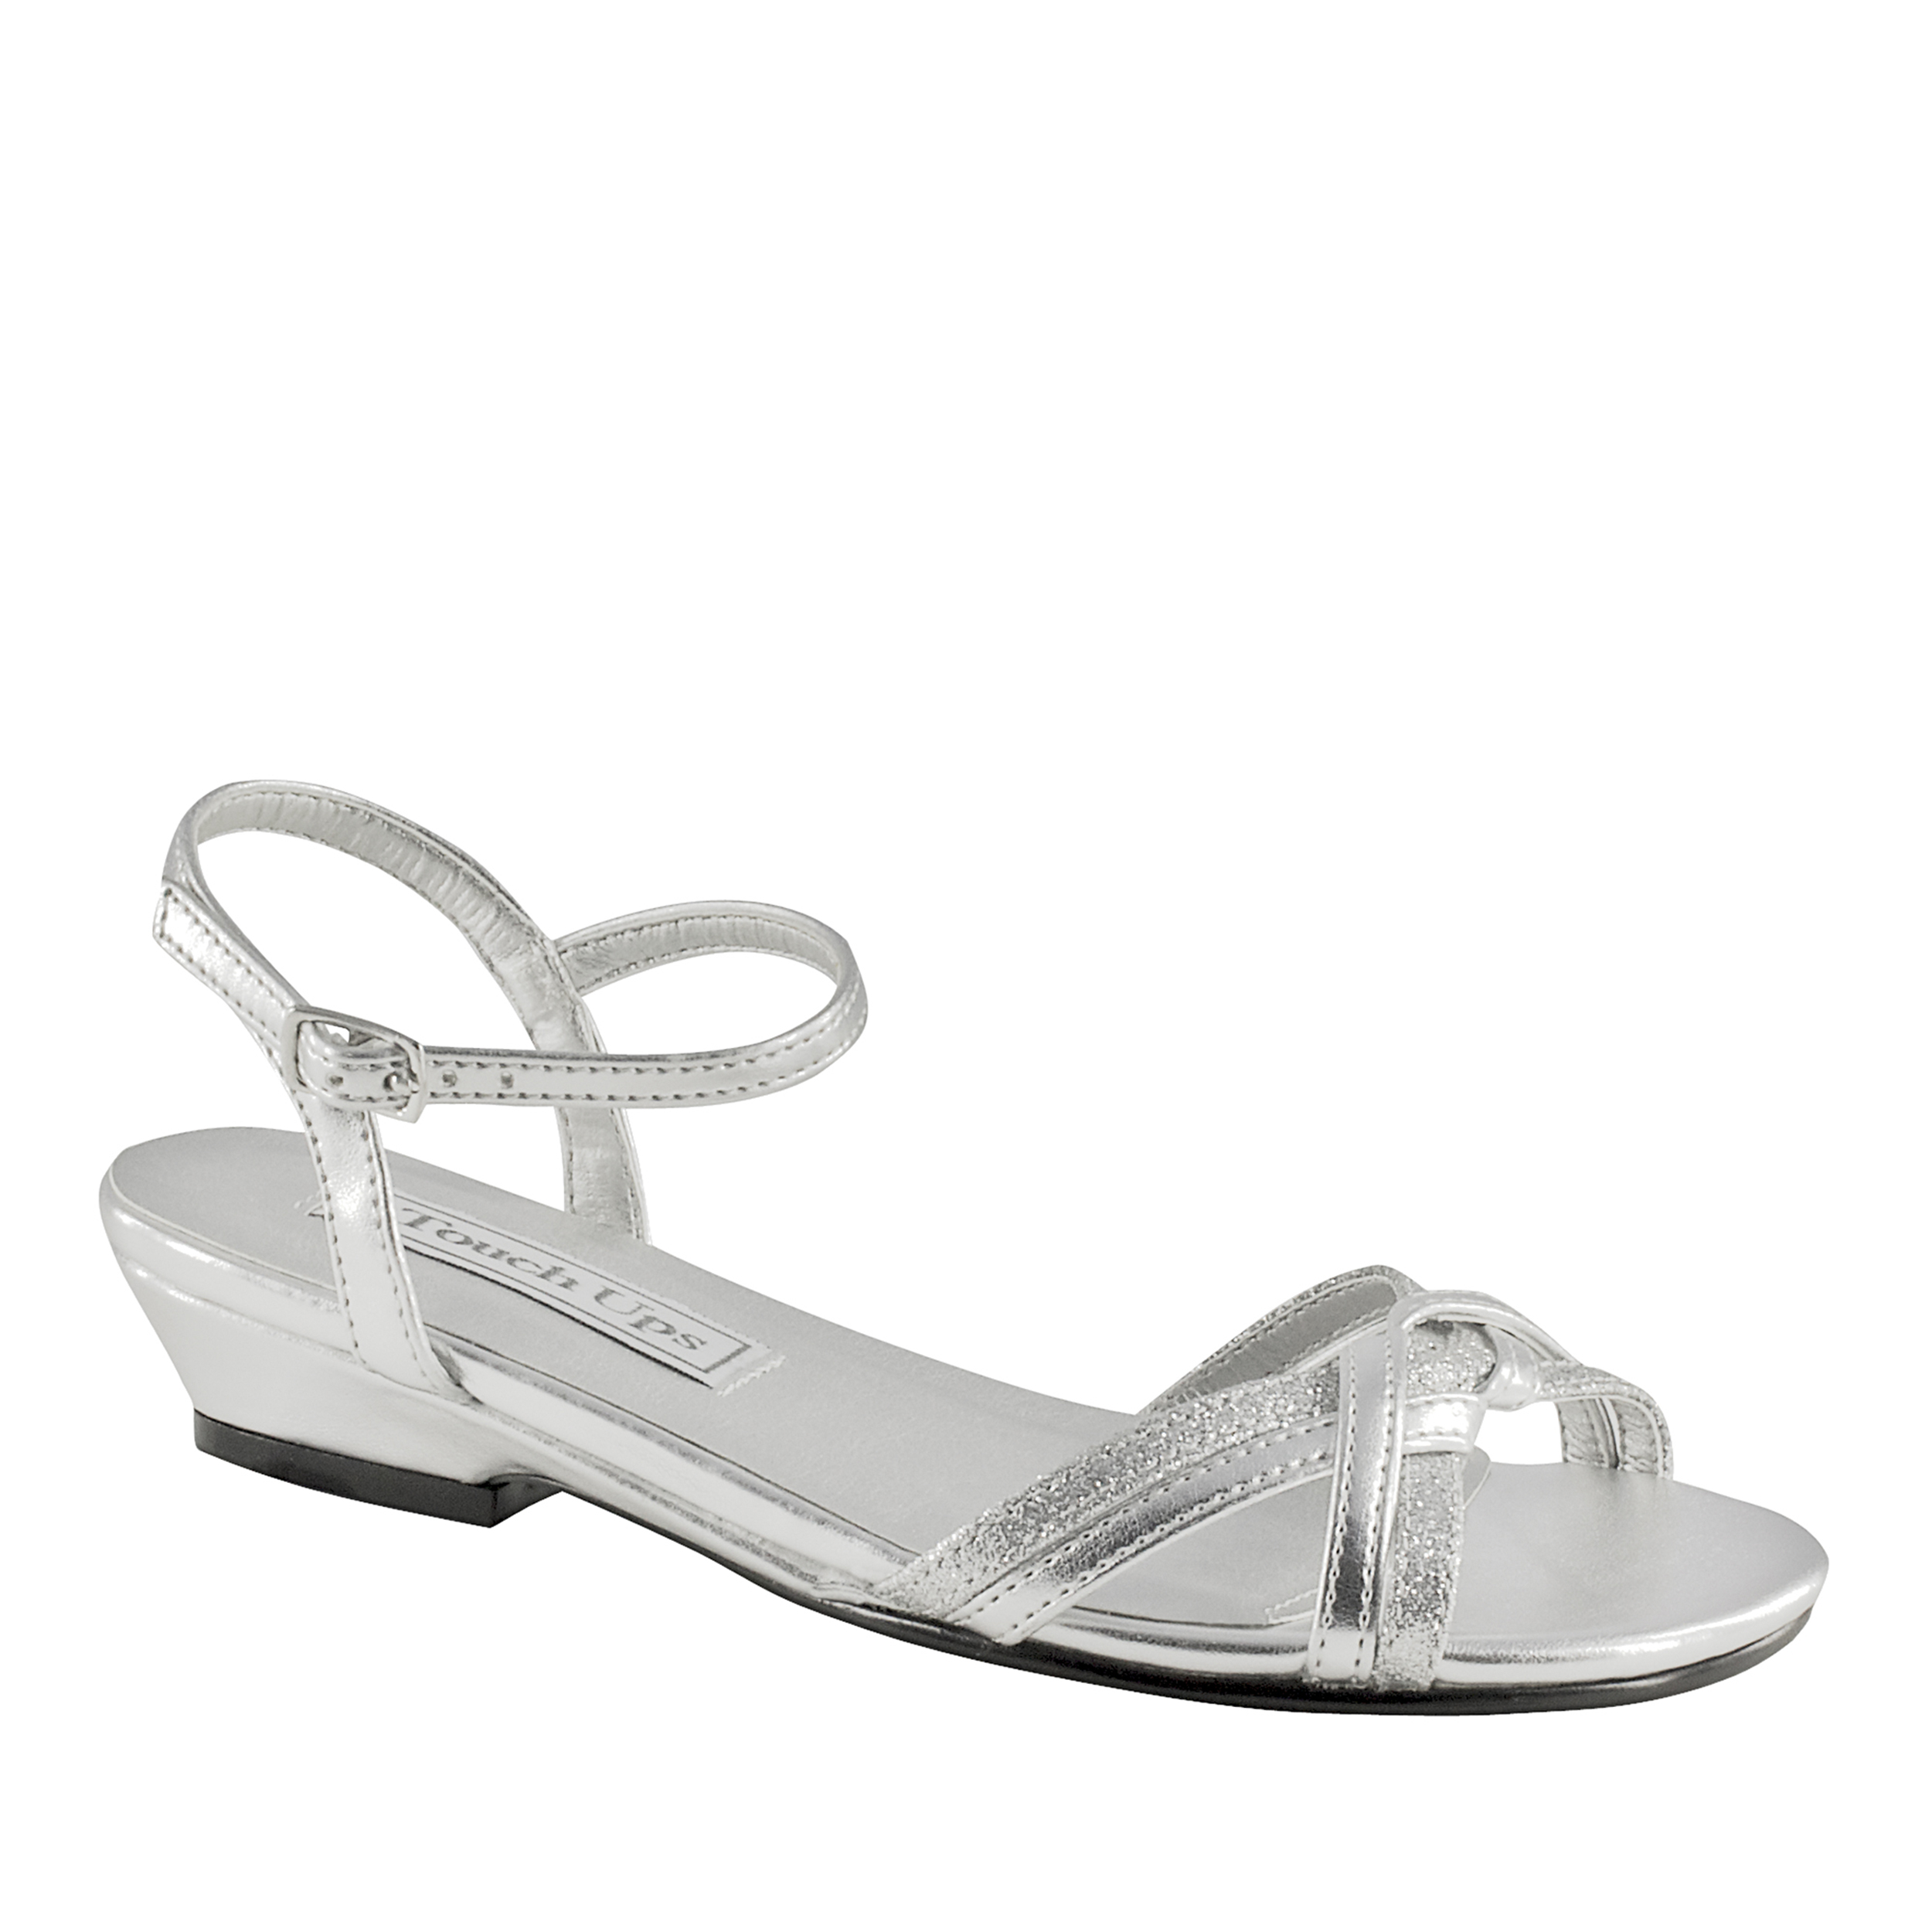 Touch Ups 156MO Melanie Jr. Silver Synthetic Womens Sandal, Silver, 10 M US Toddler by Benjamin Walk